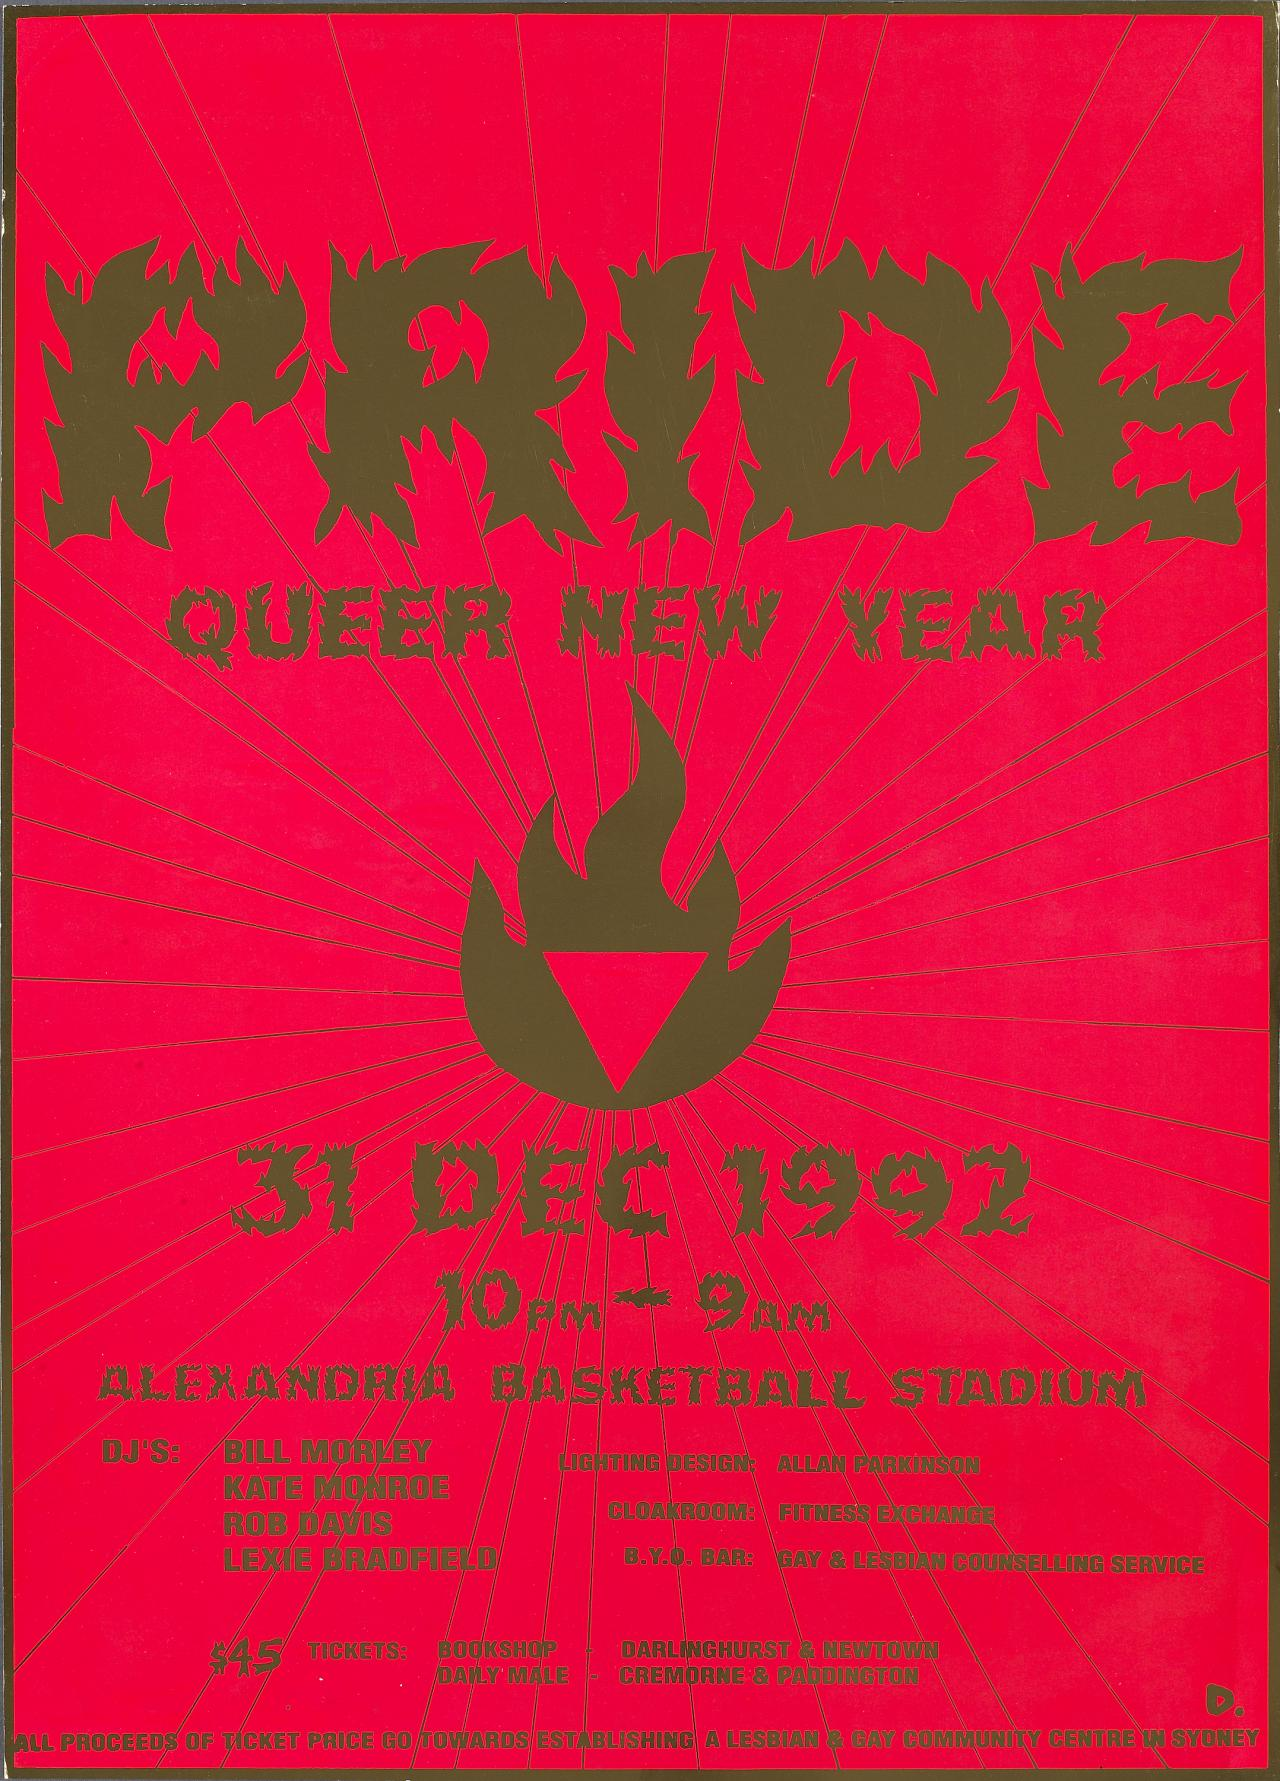 Pride Queer New Year 31 December 1992